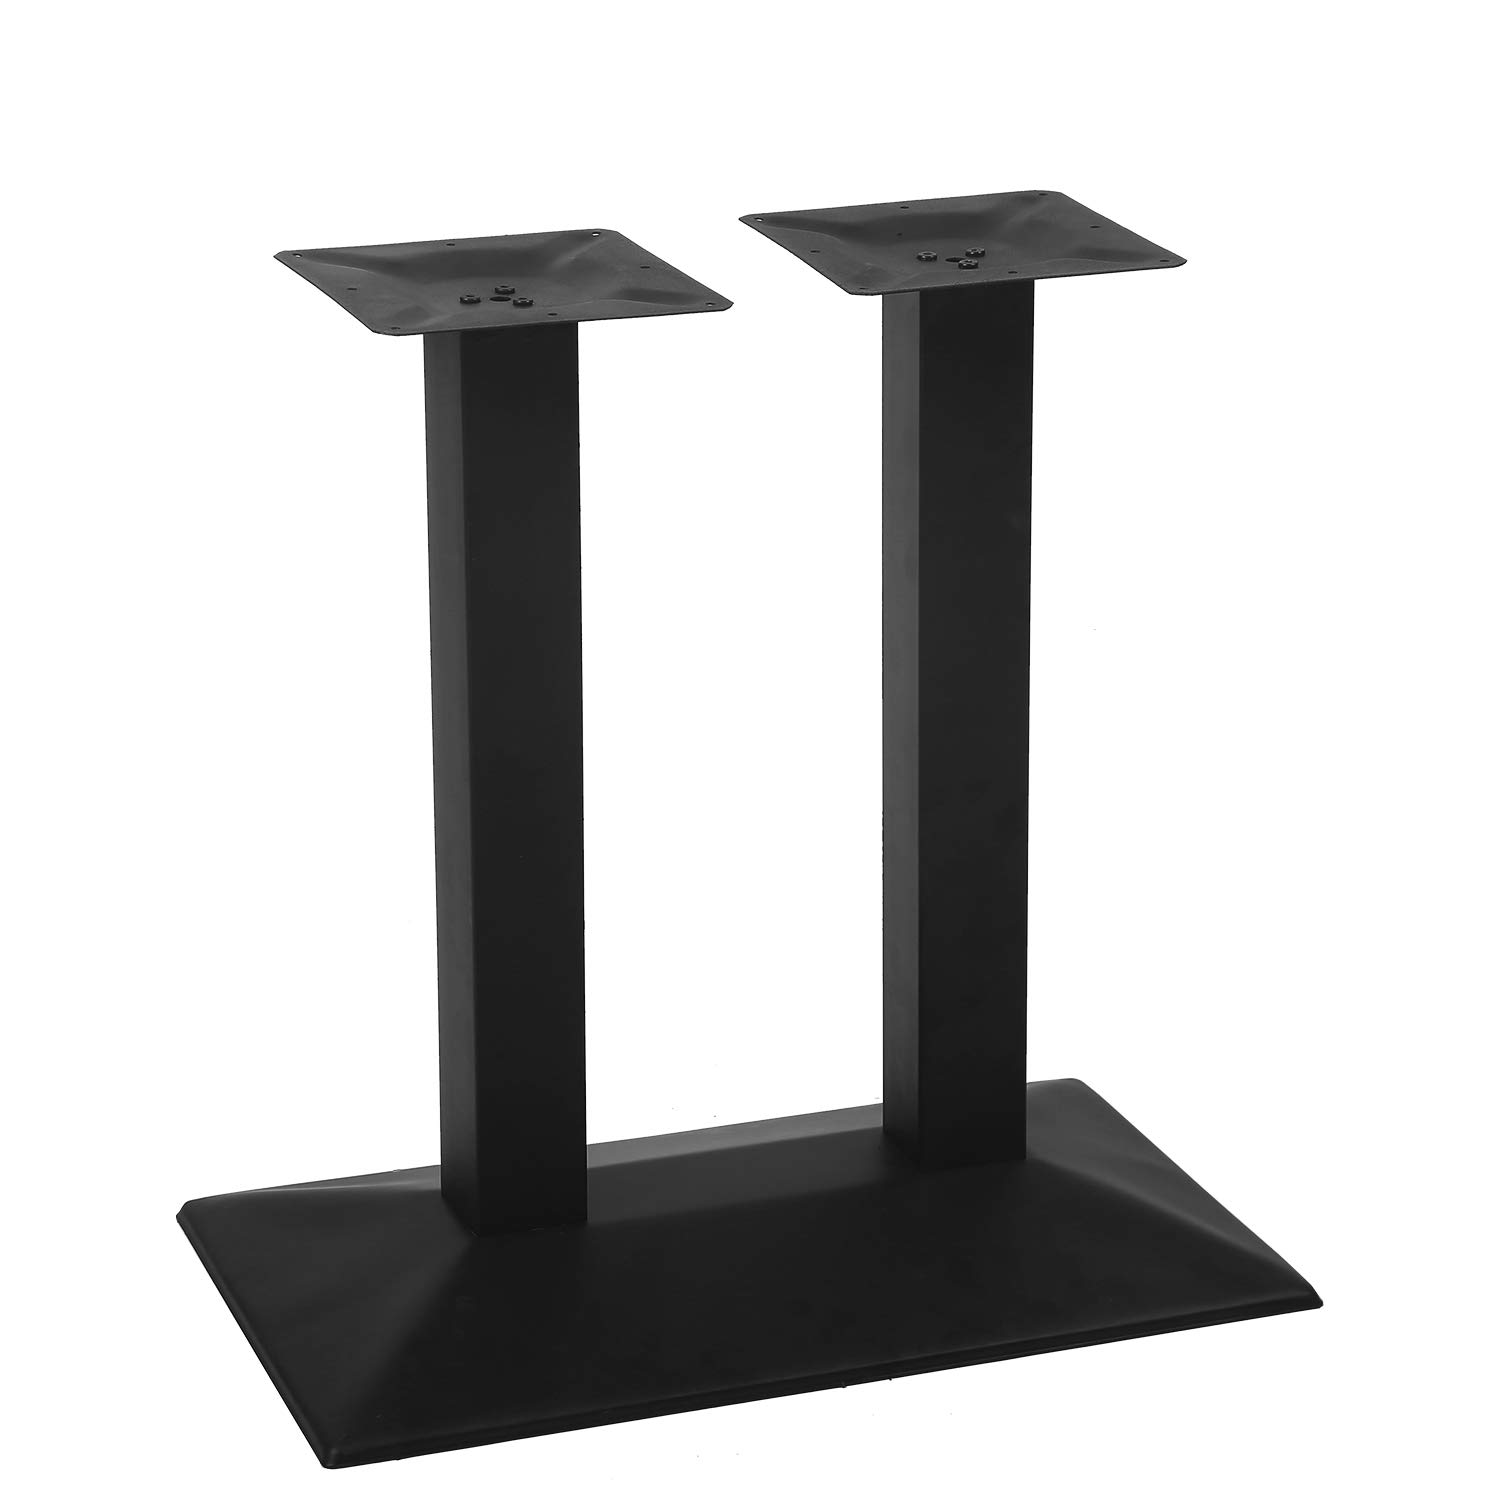 MBQQ Industrial 27.6'' x 15.7'' Rectangle Restaurant Table Base with Double 3'' Side Length Square Columns,28''Height Furniture Legs by MBQQ